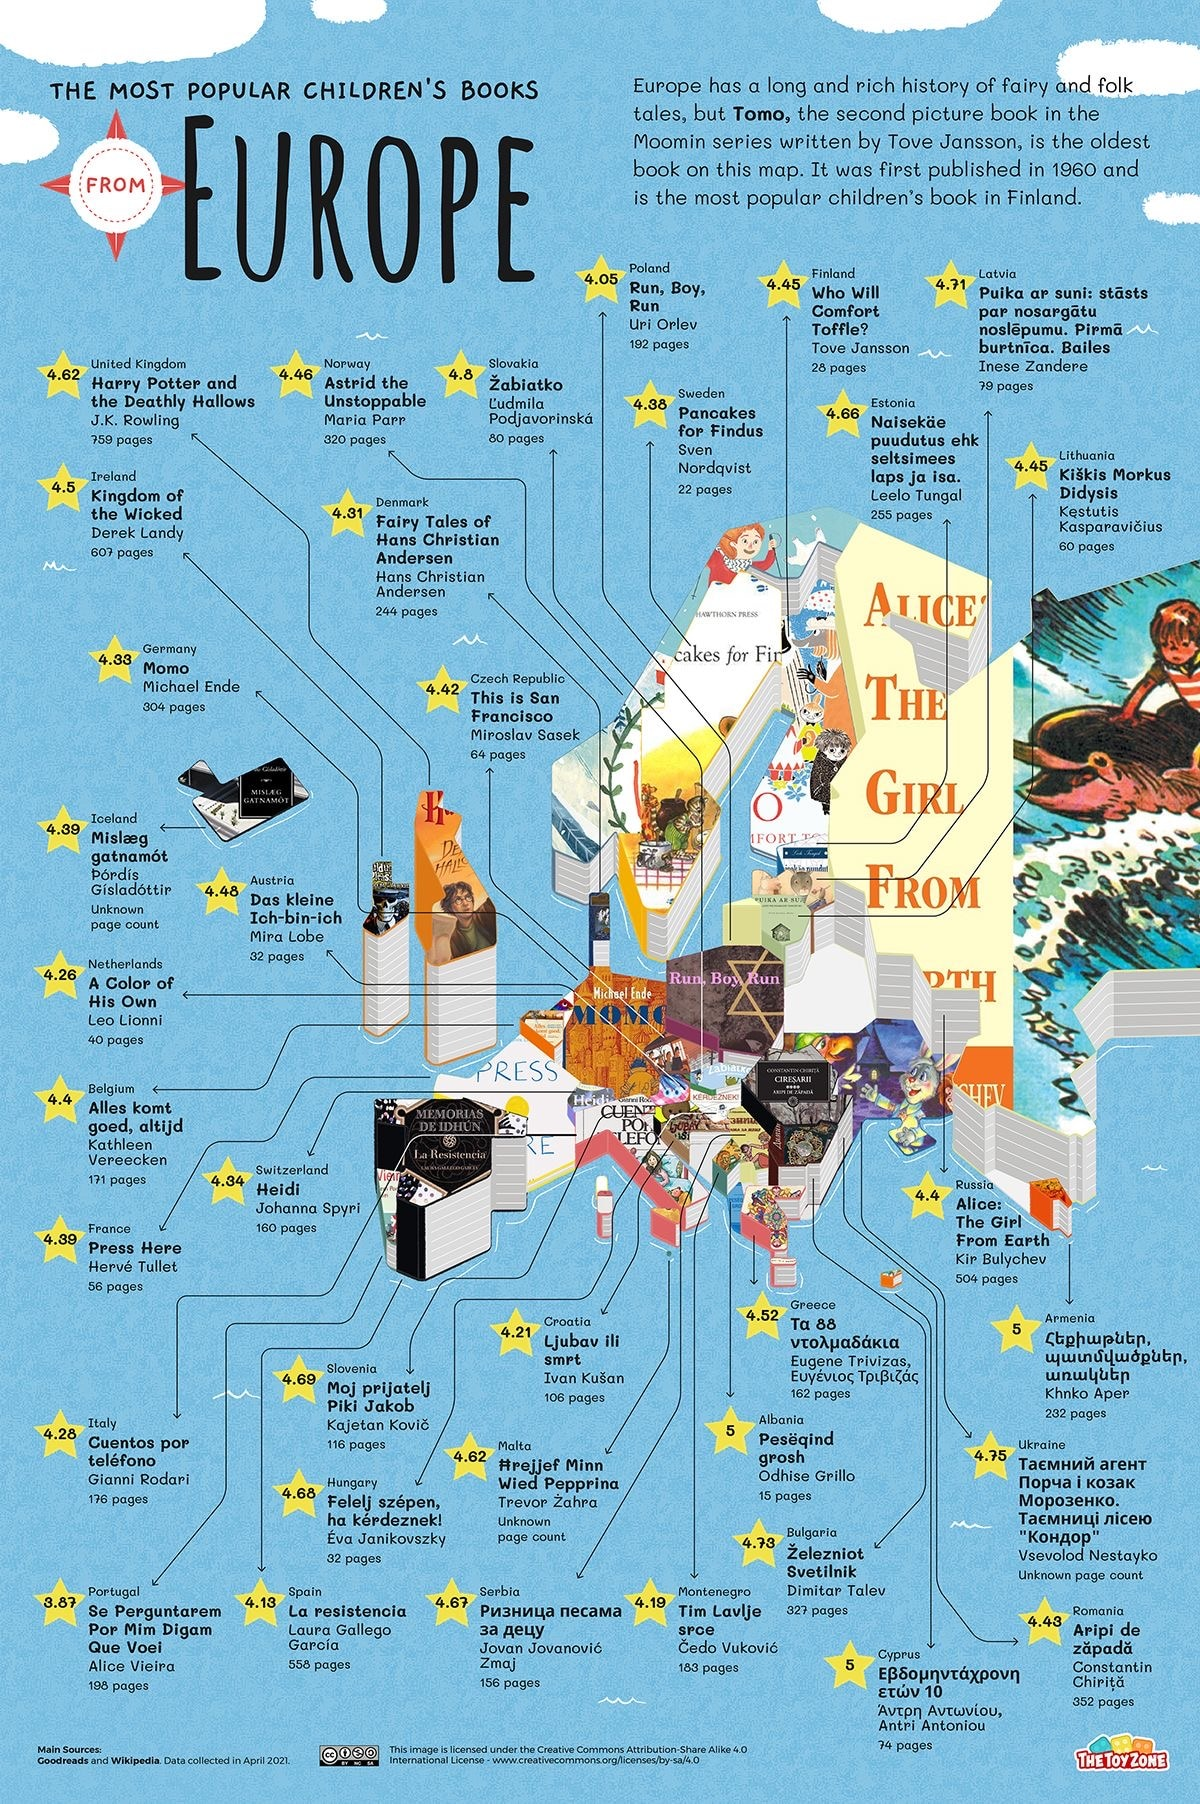 Most popular children's books from Europe